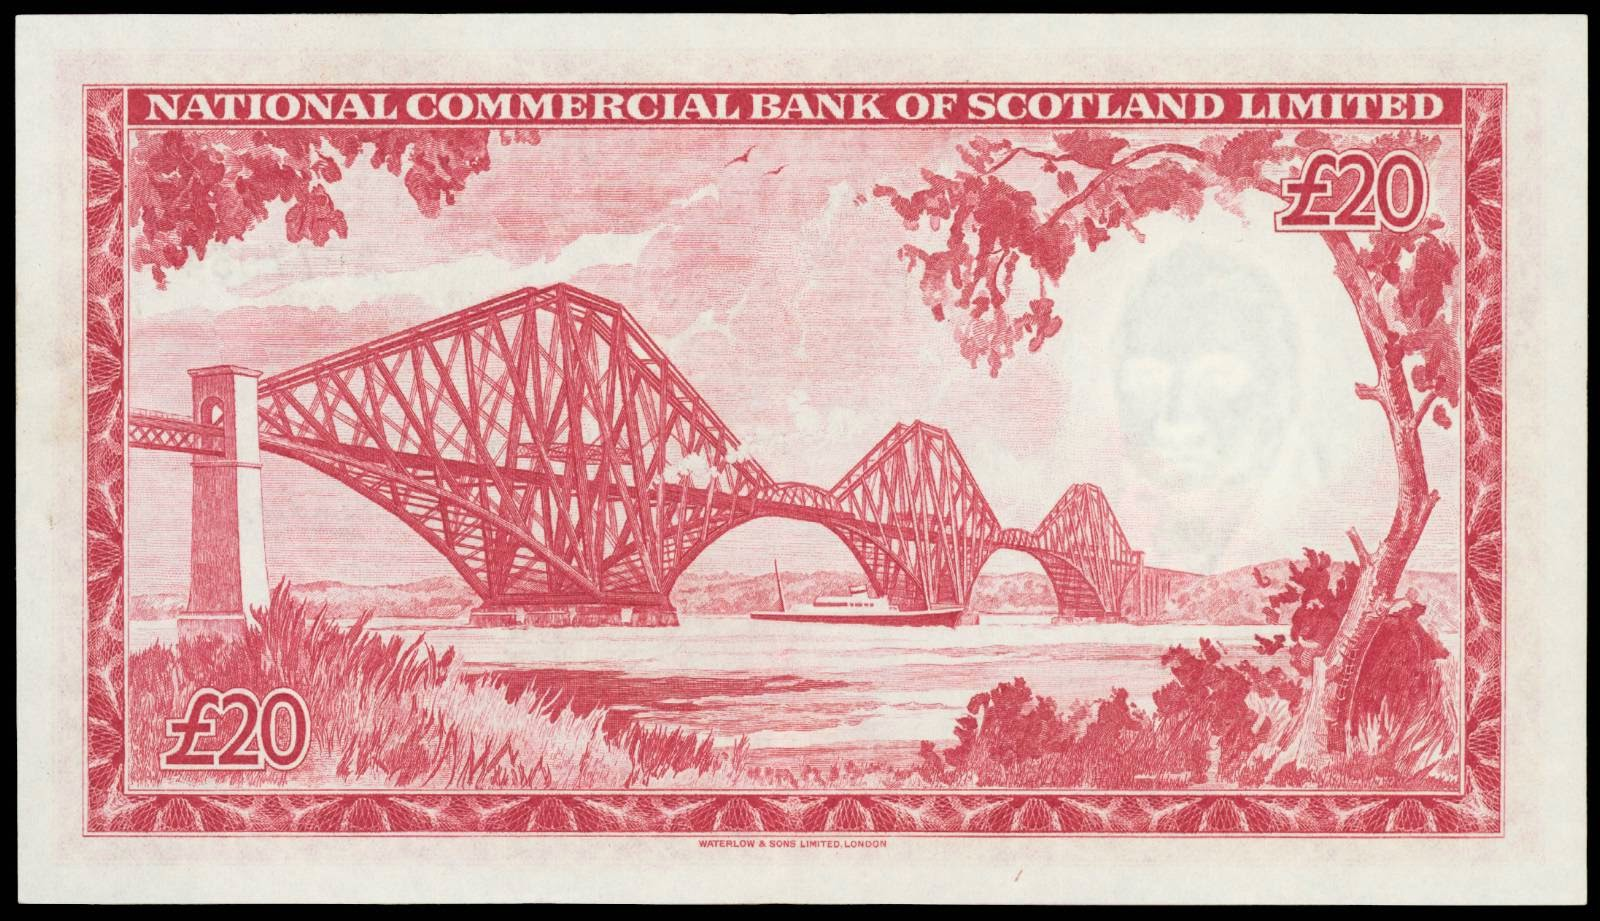 Scottish Banknotes 20 pounds 1959 National Commercial Bank of Scotland